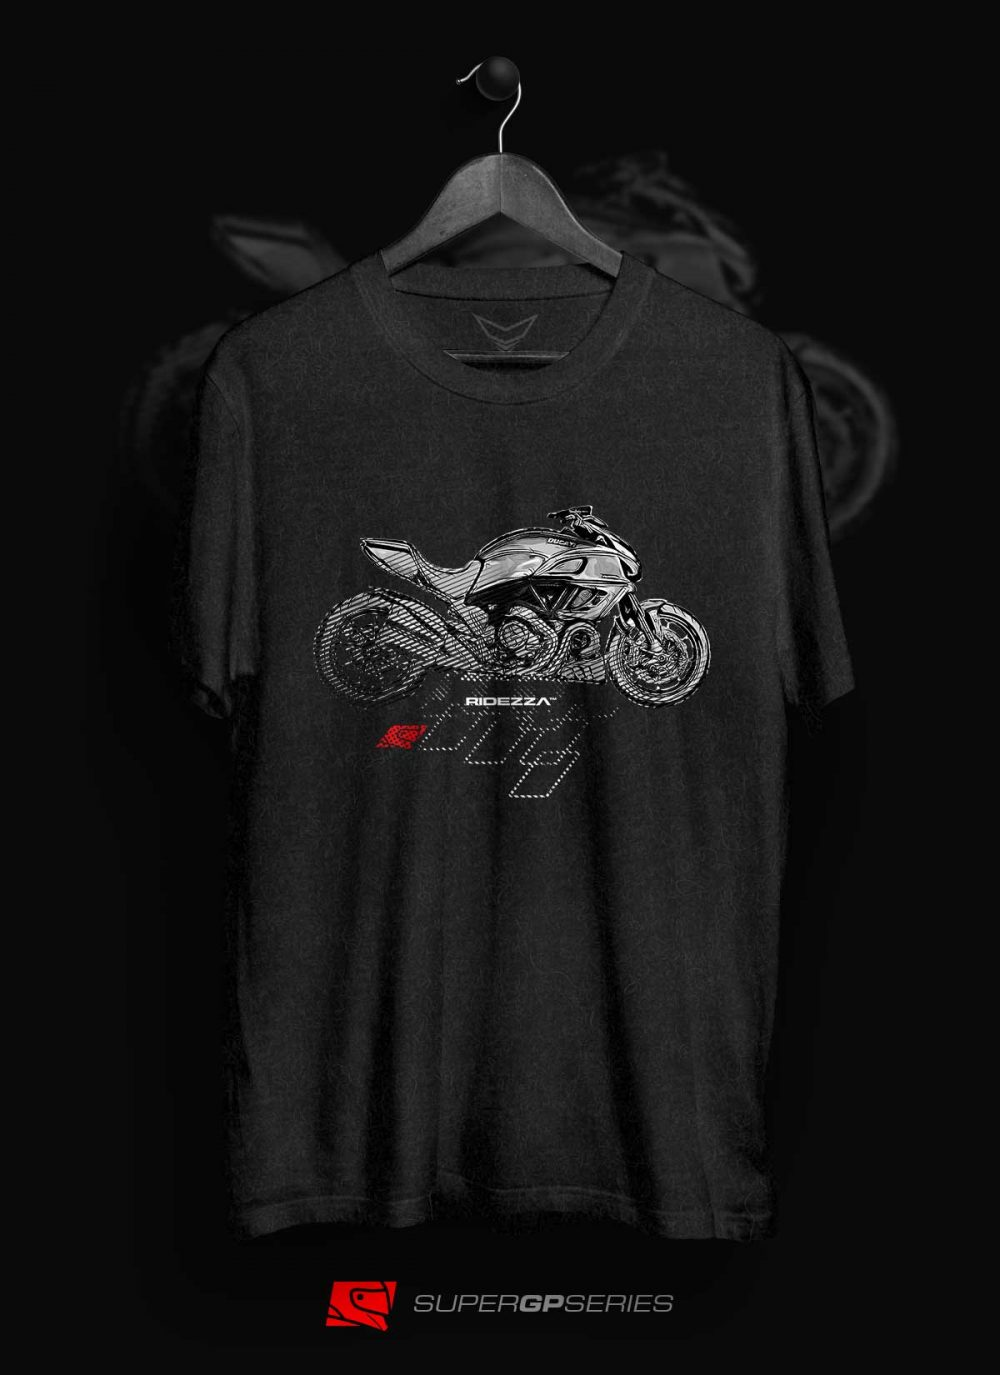 Ridezza Diavel SuperGP Series T-Shirt